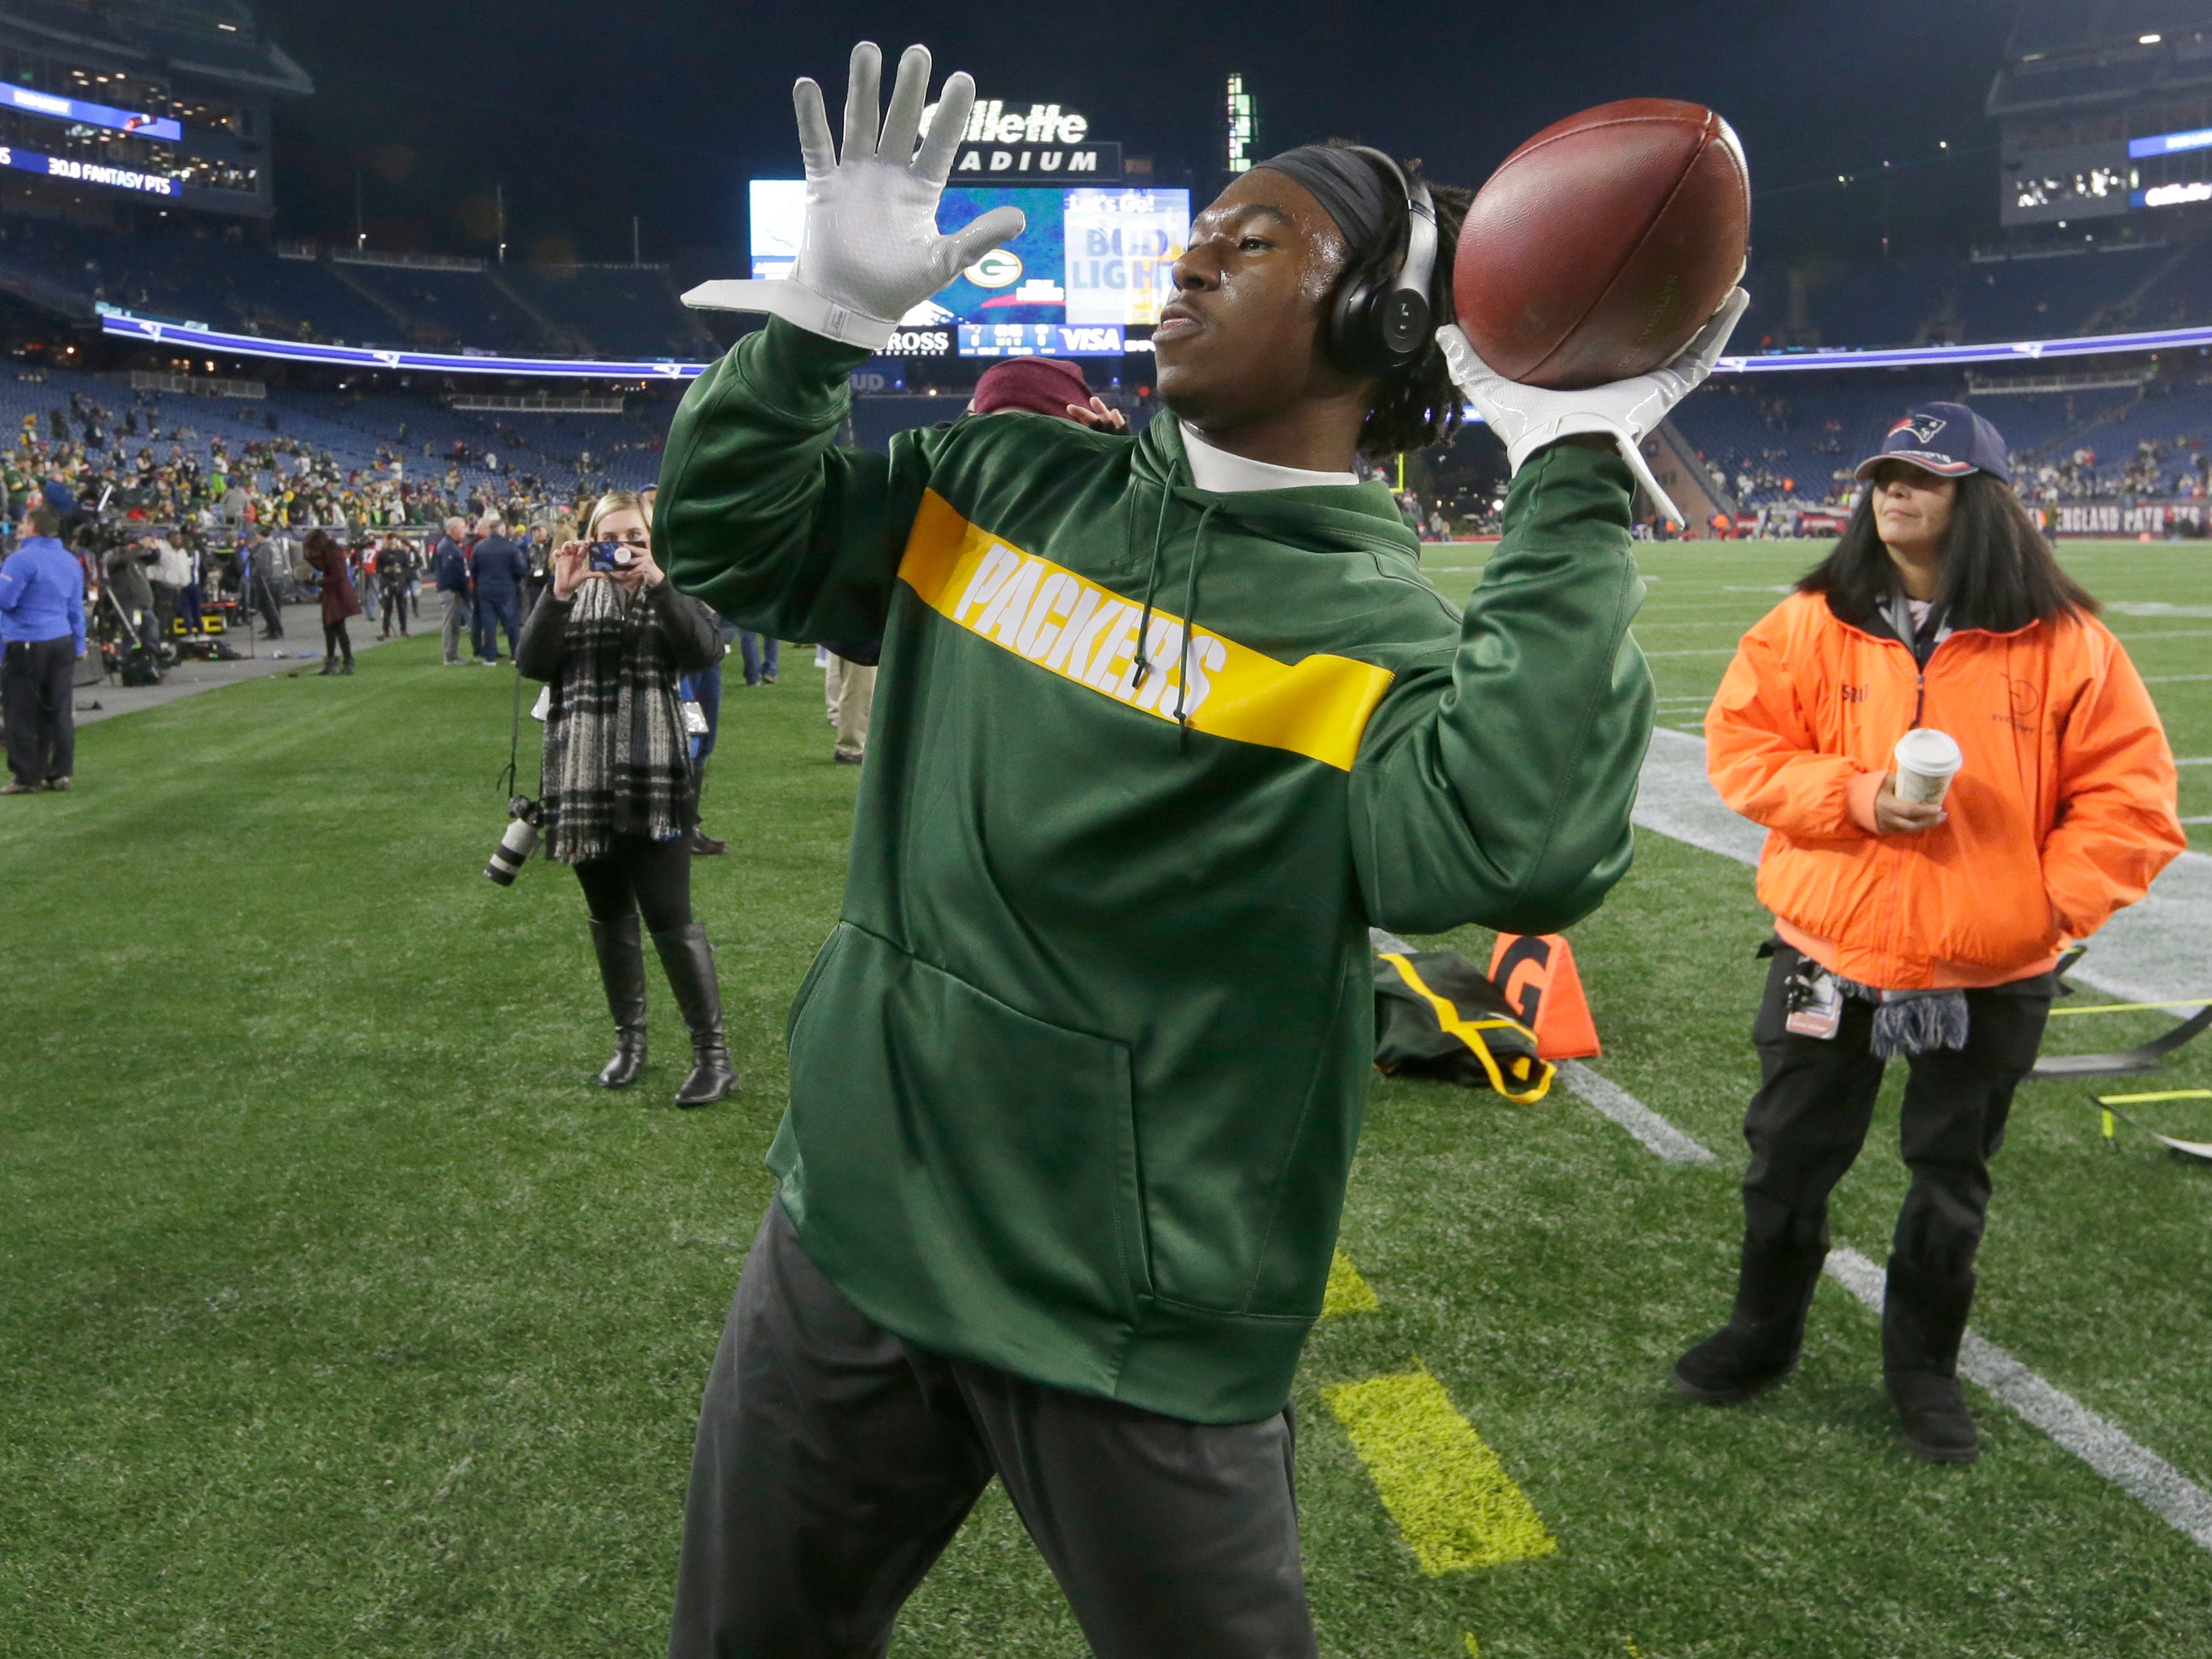 Green Bay Packers running back Jamaal Williams plays catch with a Packers fan in the stands before their game against the New England Patriots Sunday, November 4, 2018 at Gillette Stadium in Foxborough, Mass.